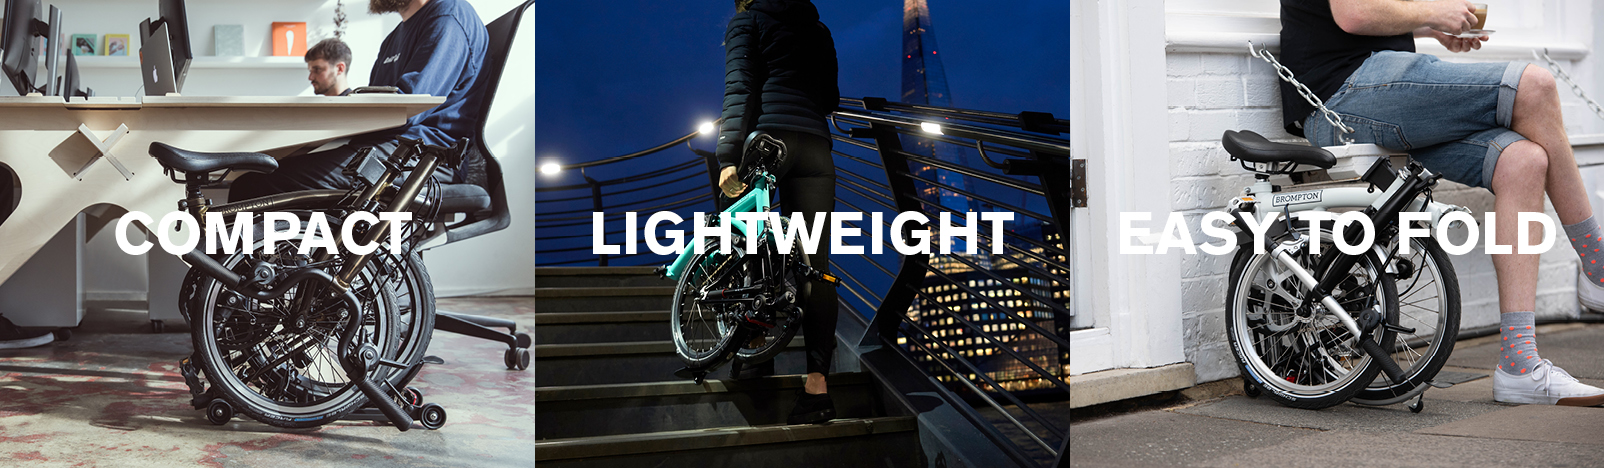 Brompton Bicycle, compact, lightweight, easy to fold